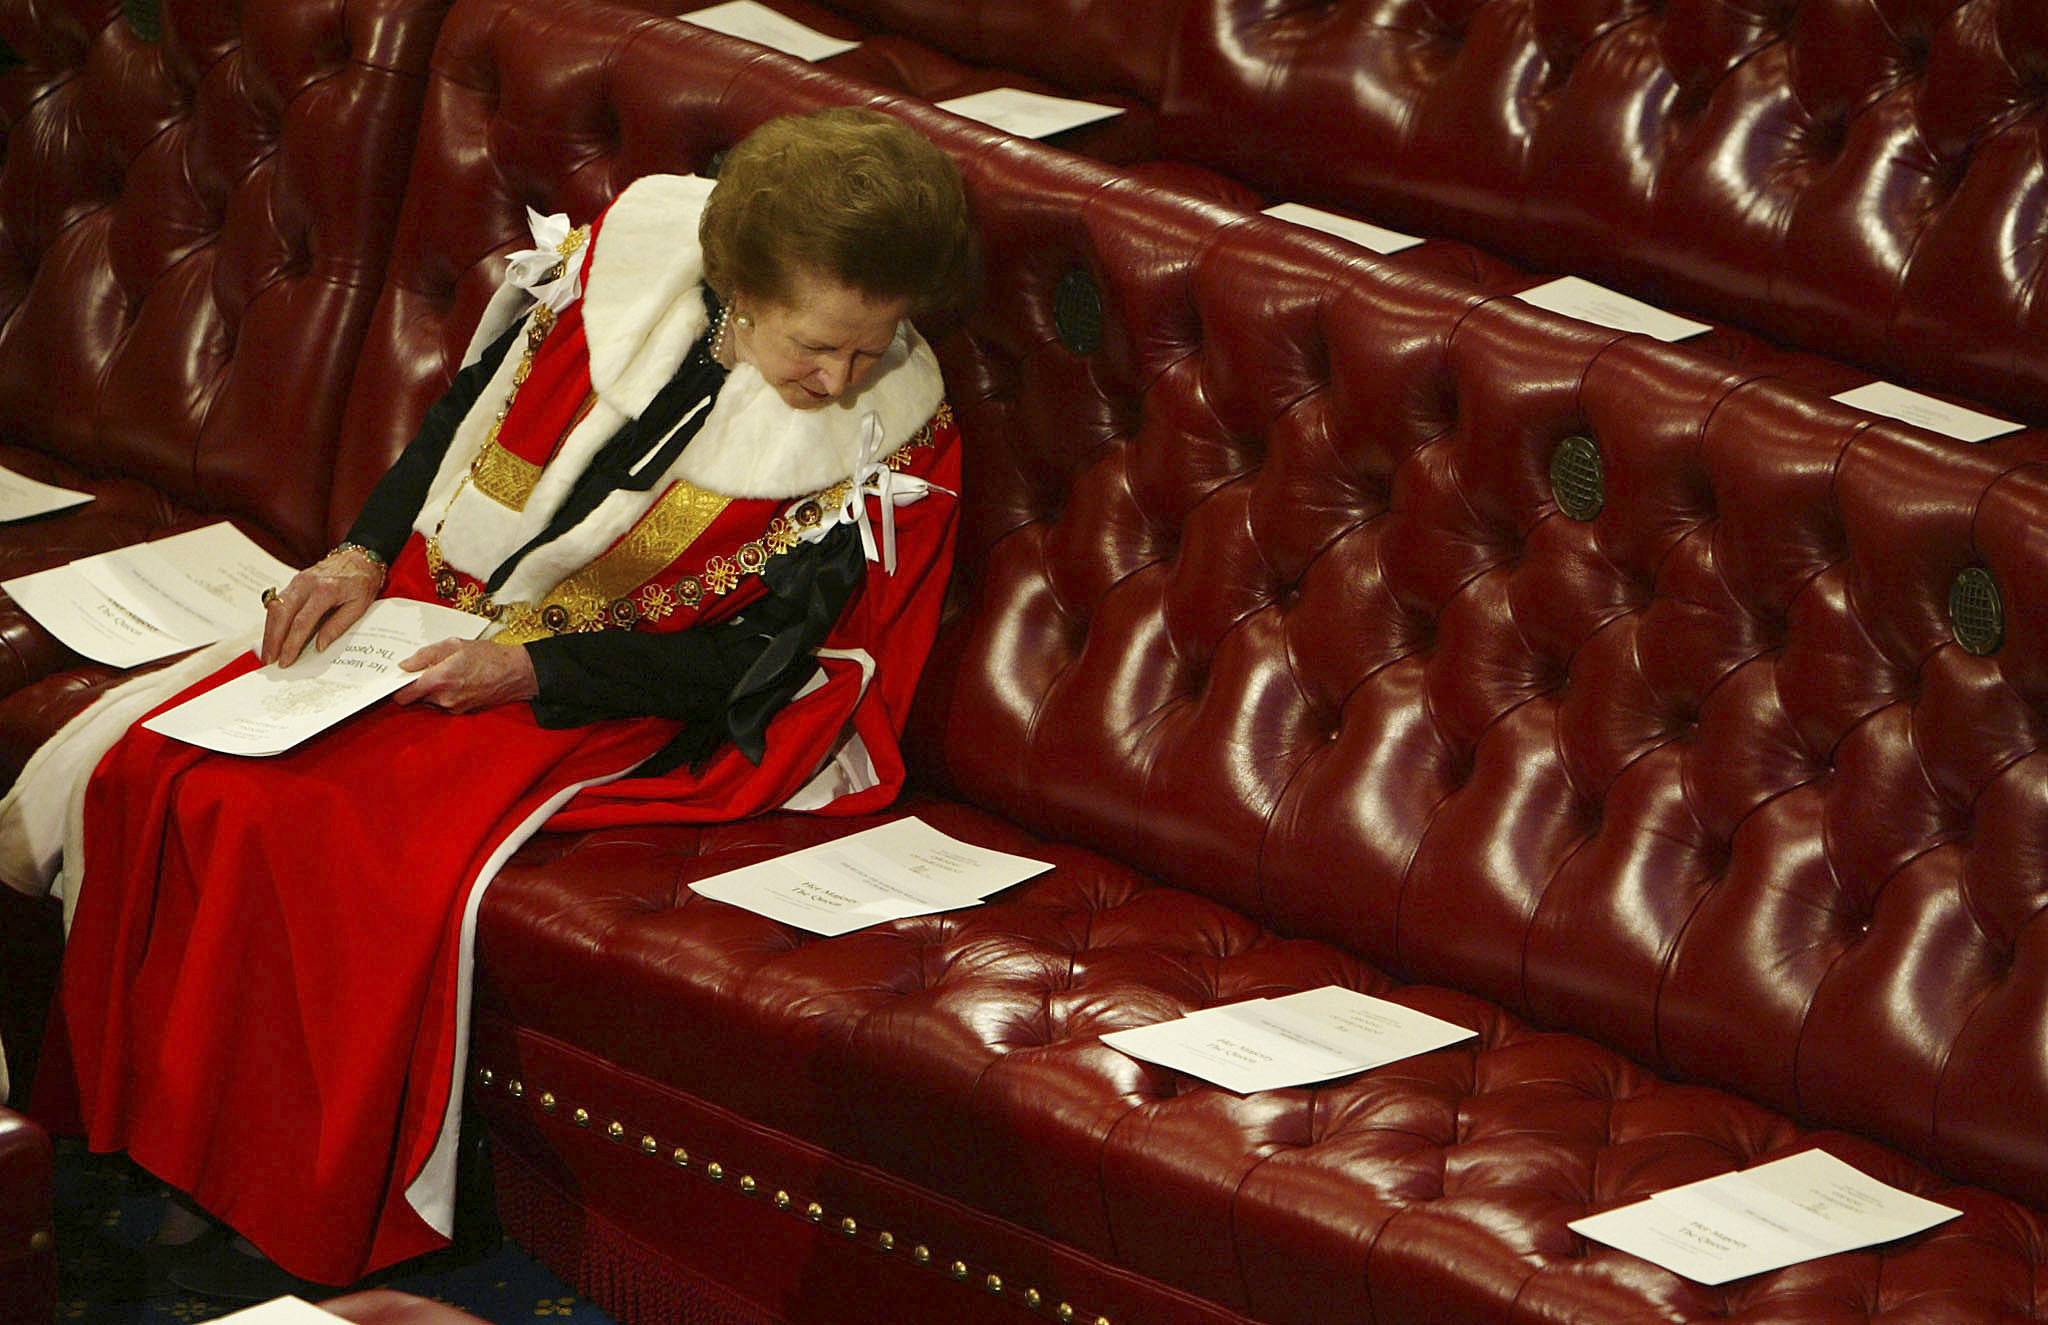 Britain's Baroness Thatcher reads the order of service surrounded by empty seats as she waits for Queen Elizabeth to deliver her speech at the State Opening of Parliament in the House of Lords in London in this November 13, 2002 file photo.